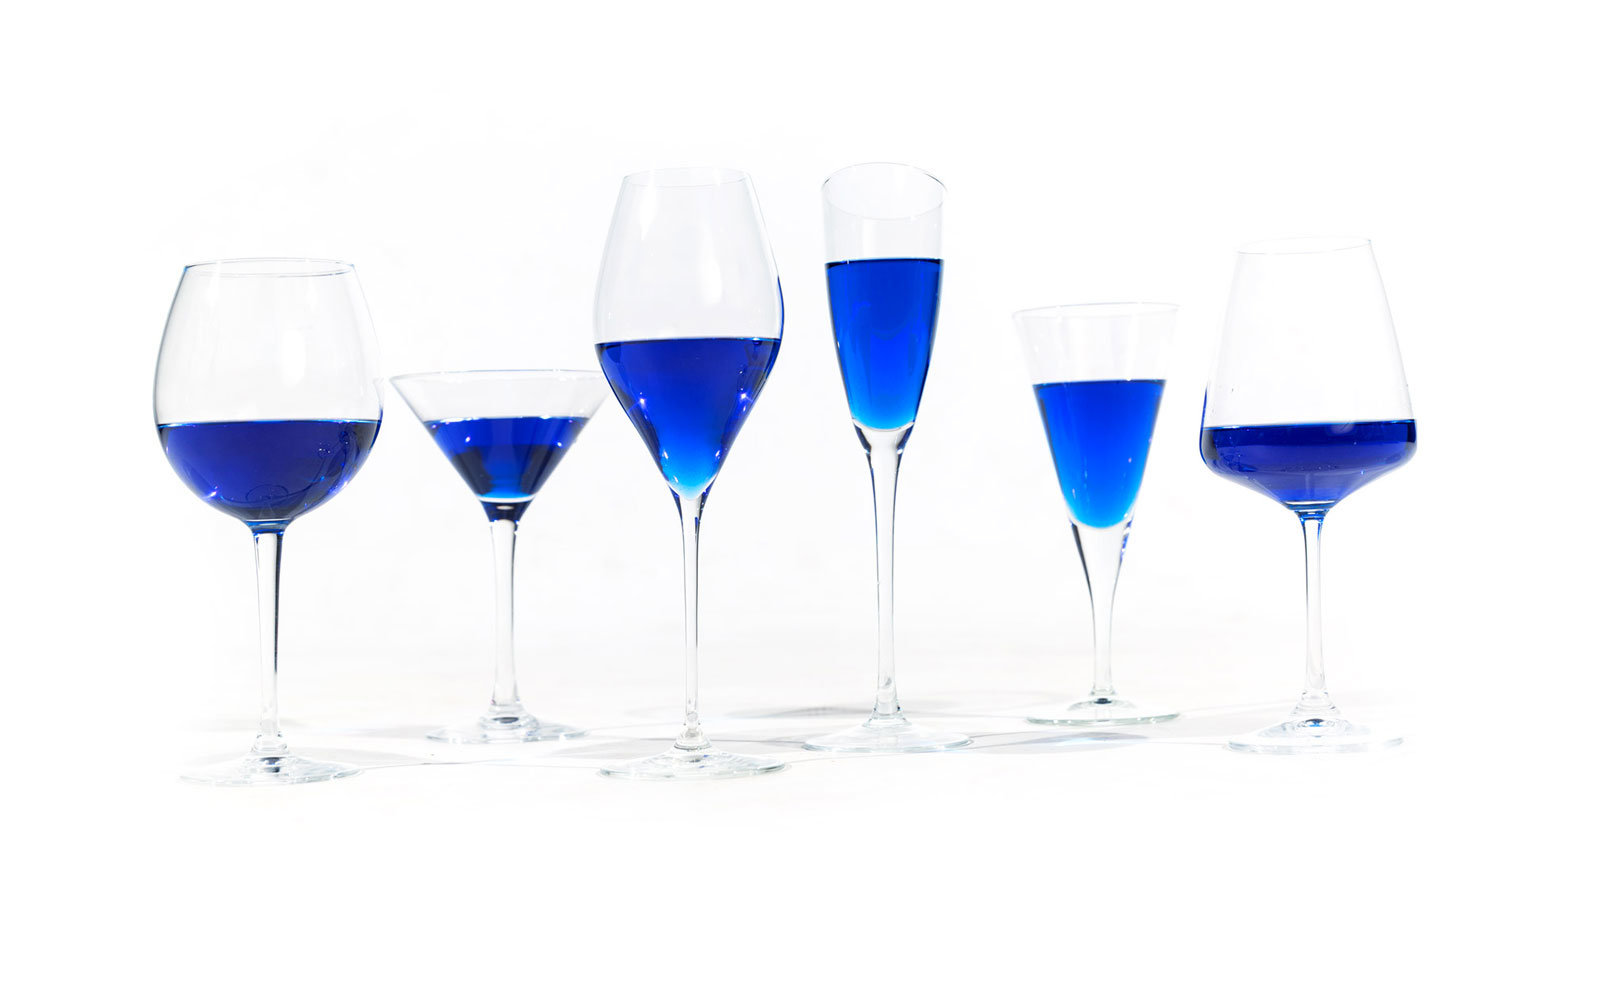 Blue wine in Spain